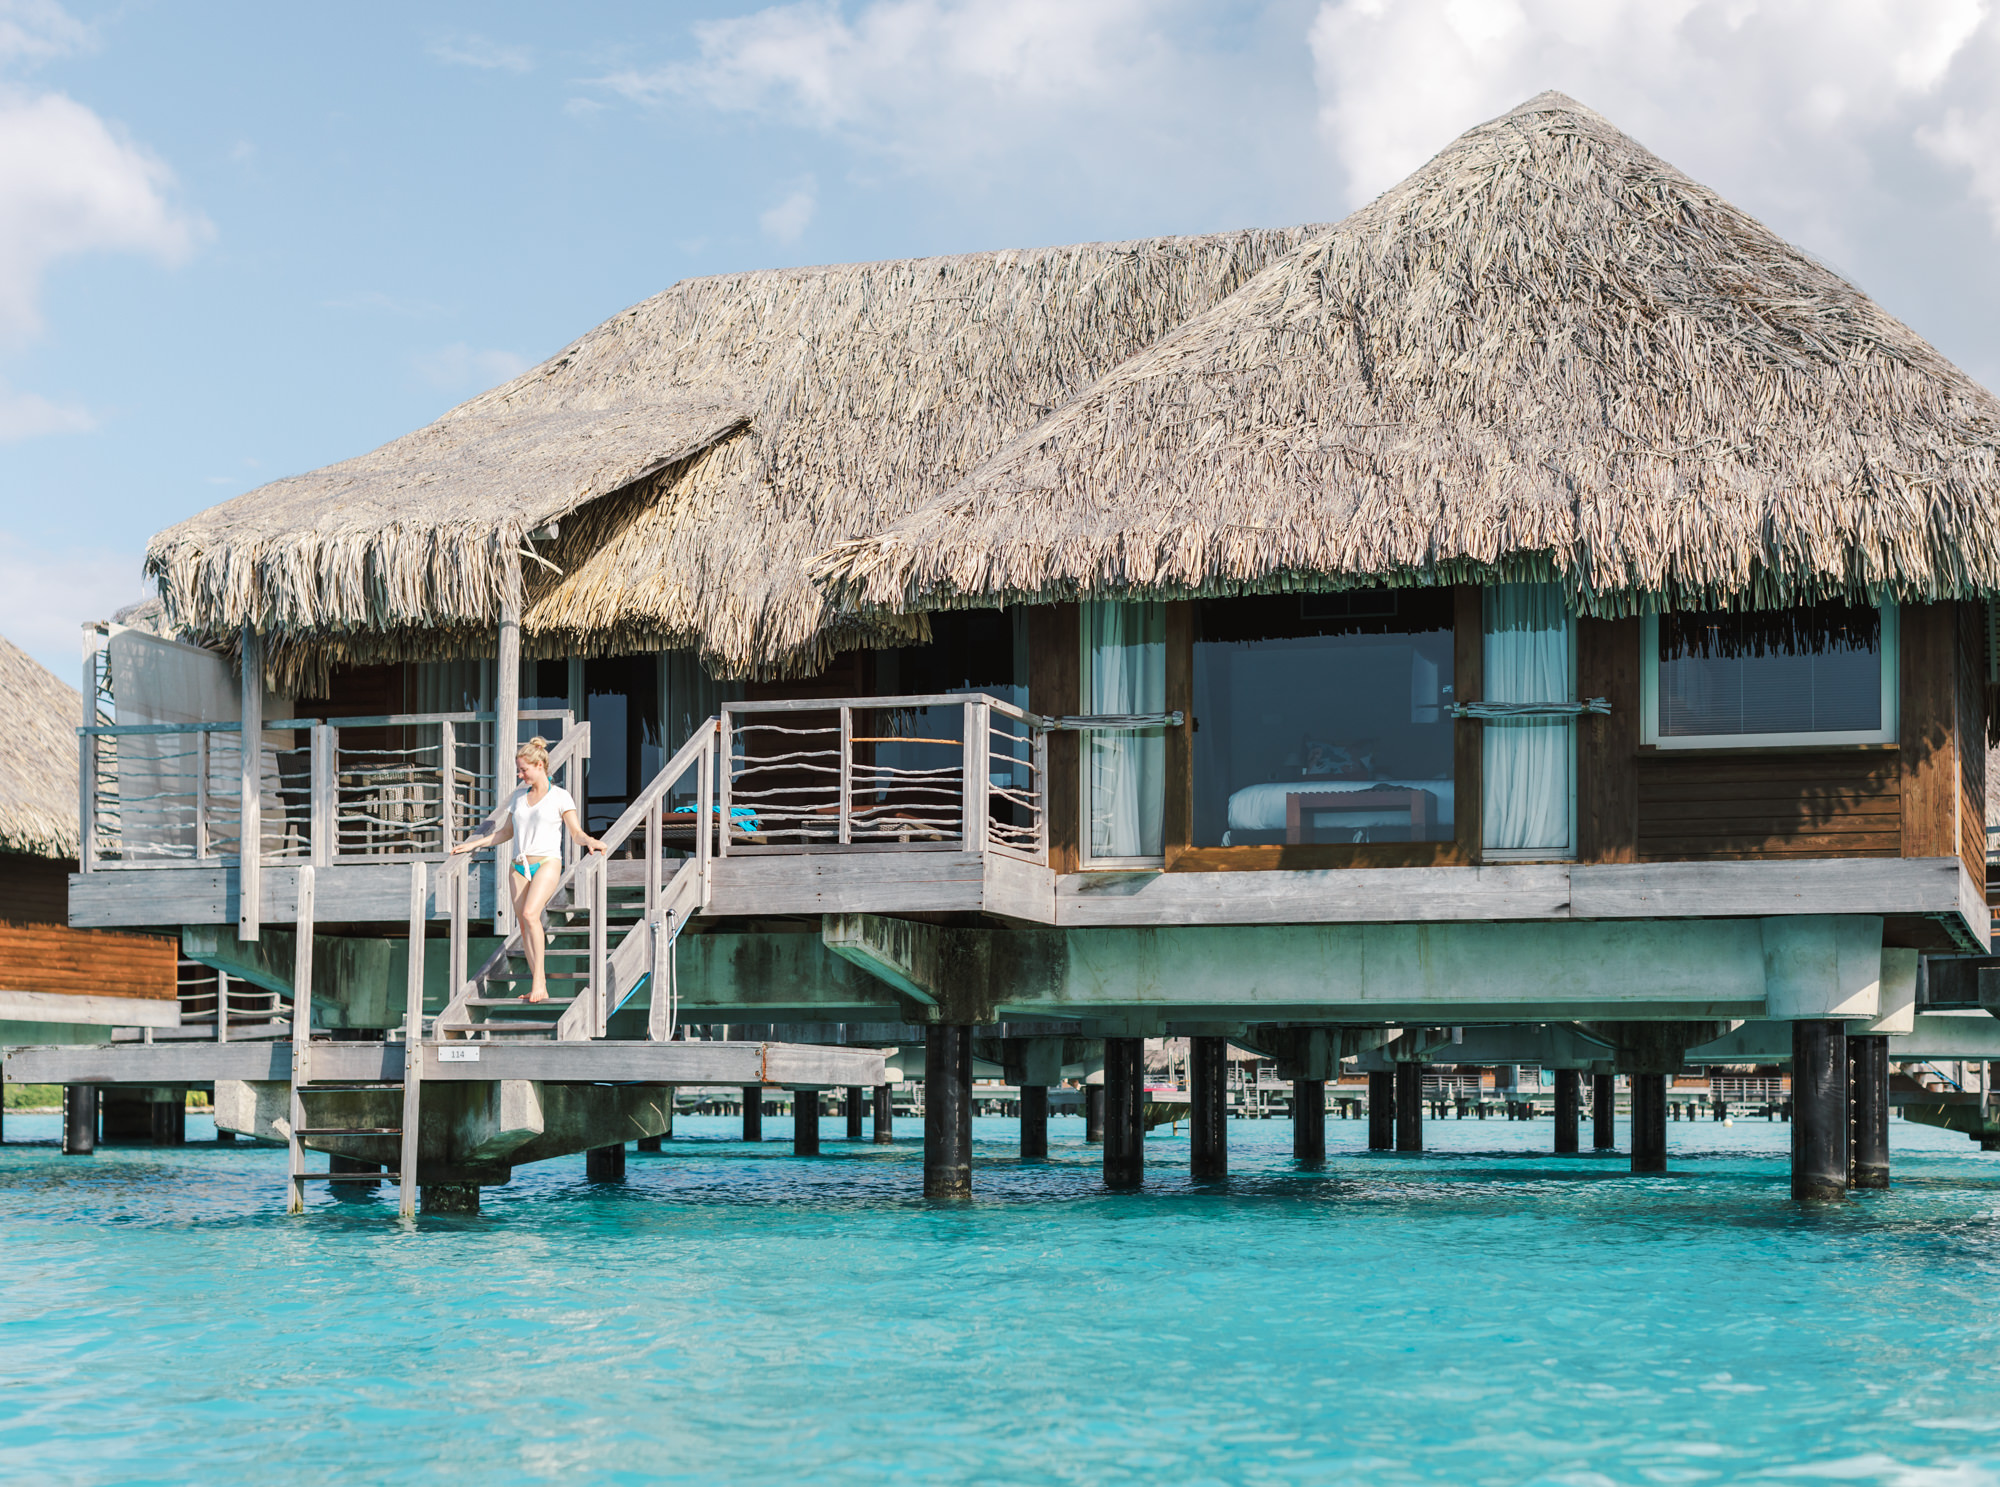 Our InterContinental Bora Bora Honeymoon diamond overwater bungalow